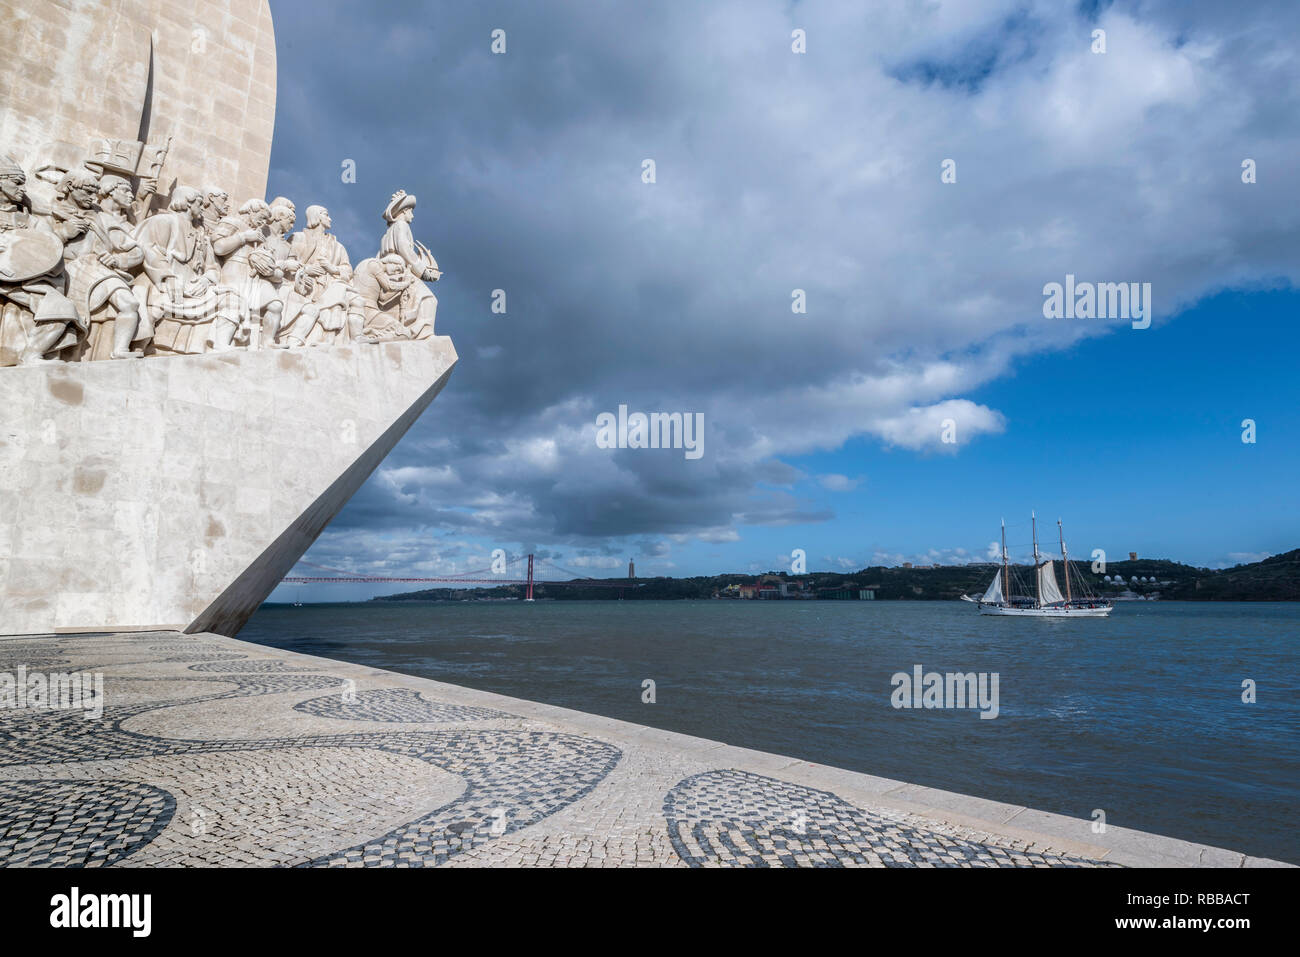 Glimpse of the monument to the discoveries and bridge 25 April on the river Tagus in Lisbon - Stock Image